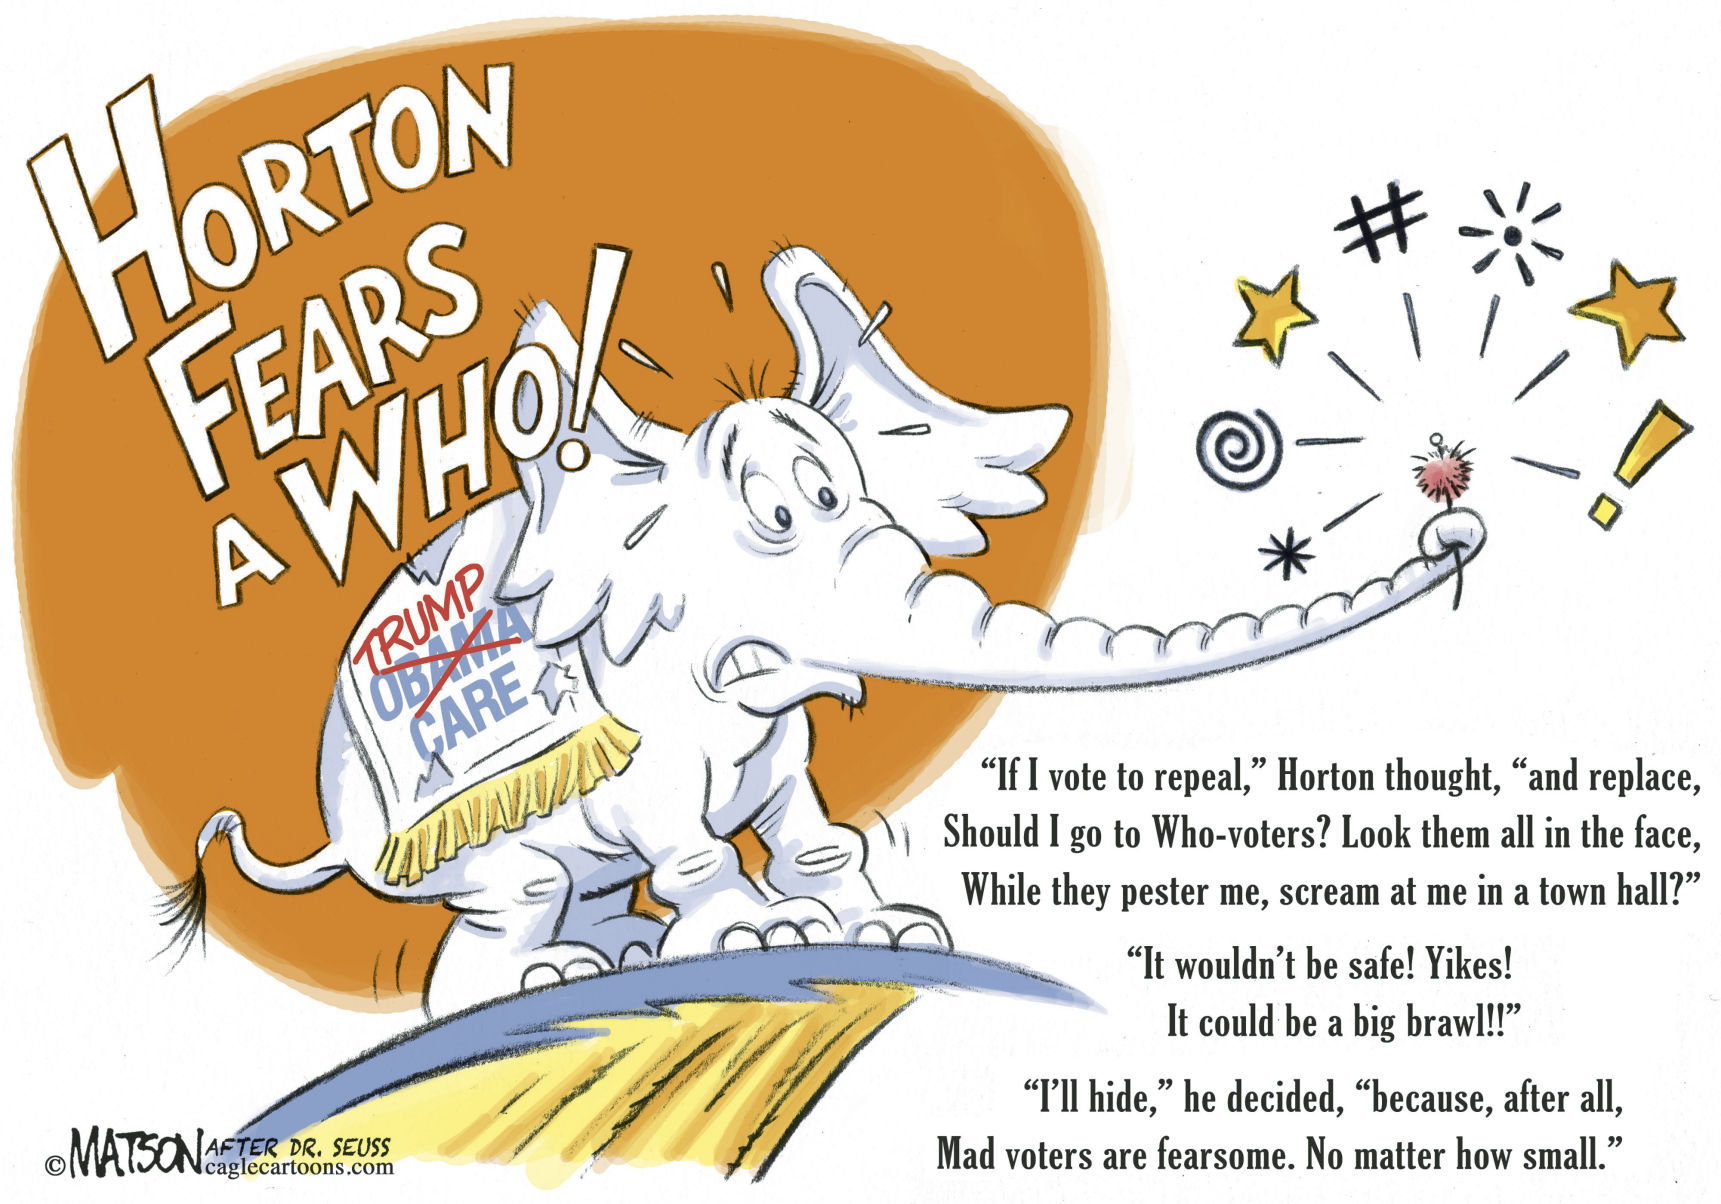 Title:  Horton Fears a Who!  Image:  Republican Elephant wearing a